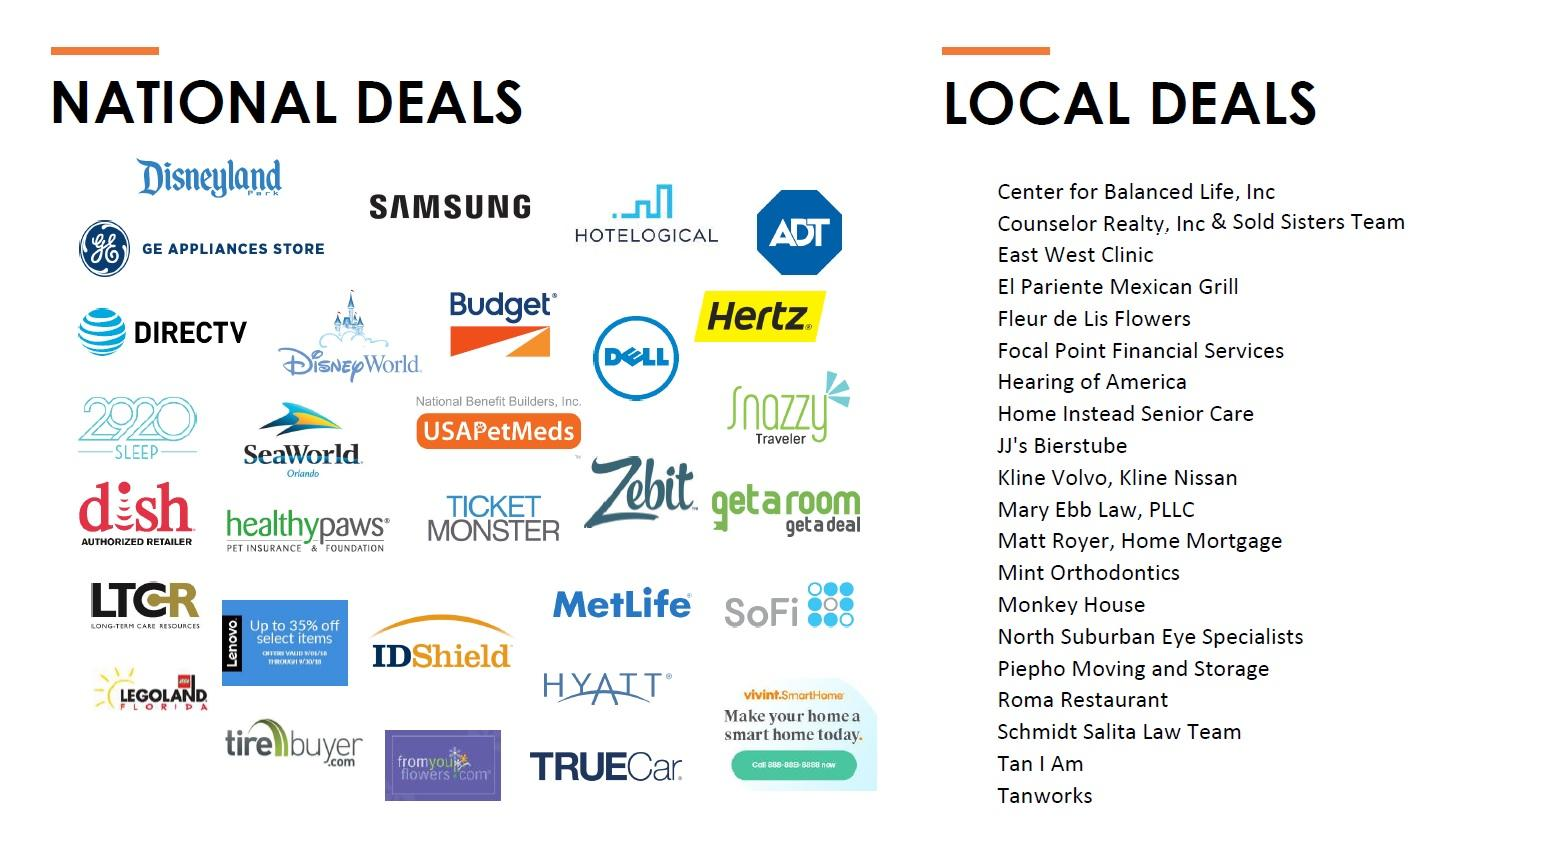 Several logos of companies where alumni can find deals including Disneyland, Samsung, SeaWorld, Hyatt, and others. Local deals include Counselor Realty, Hearing of America, Tanworks, and others.